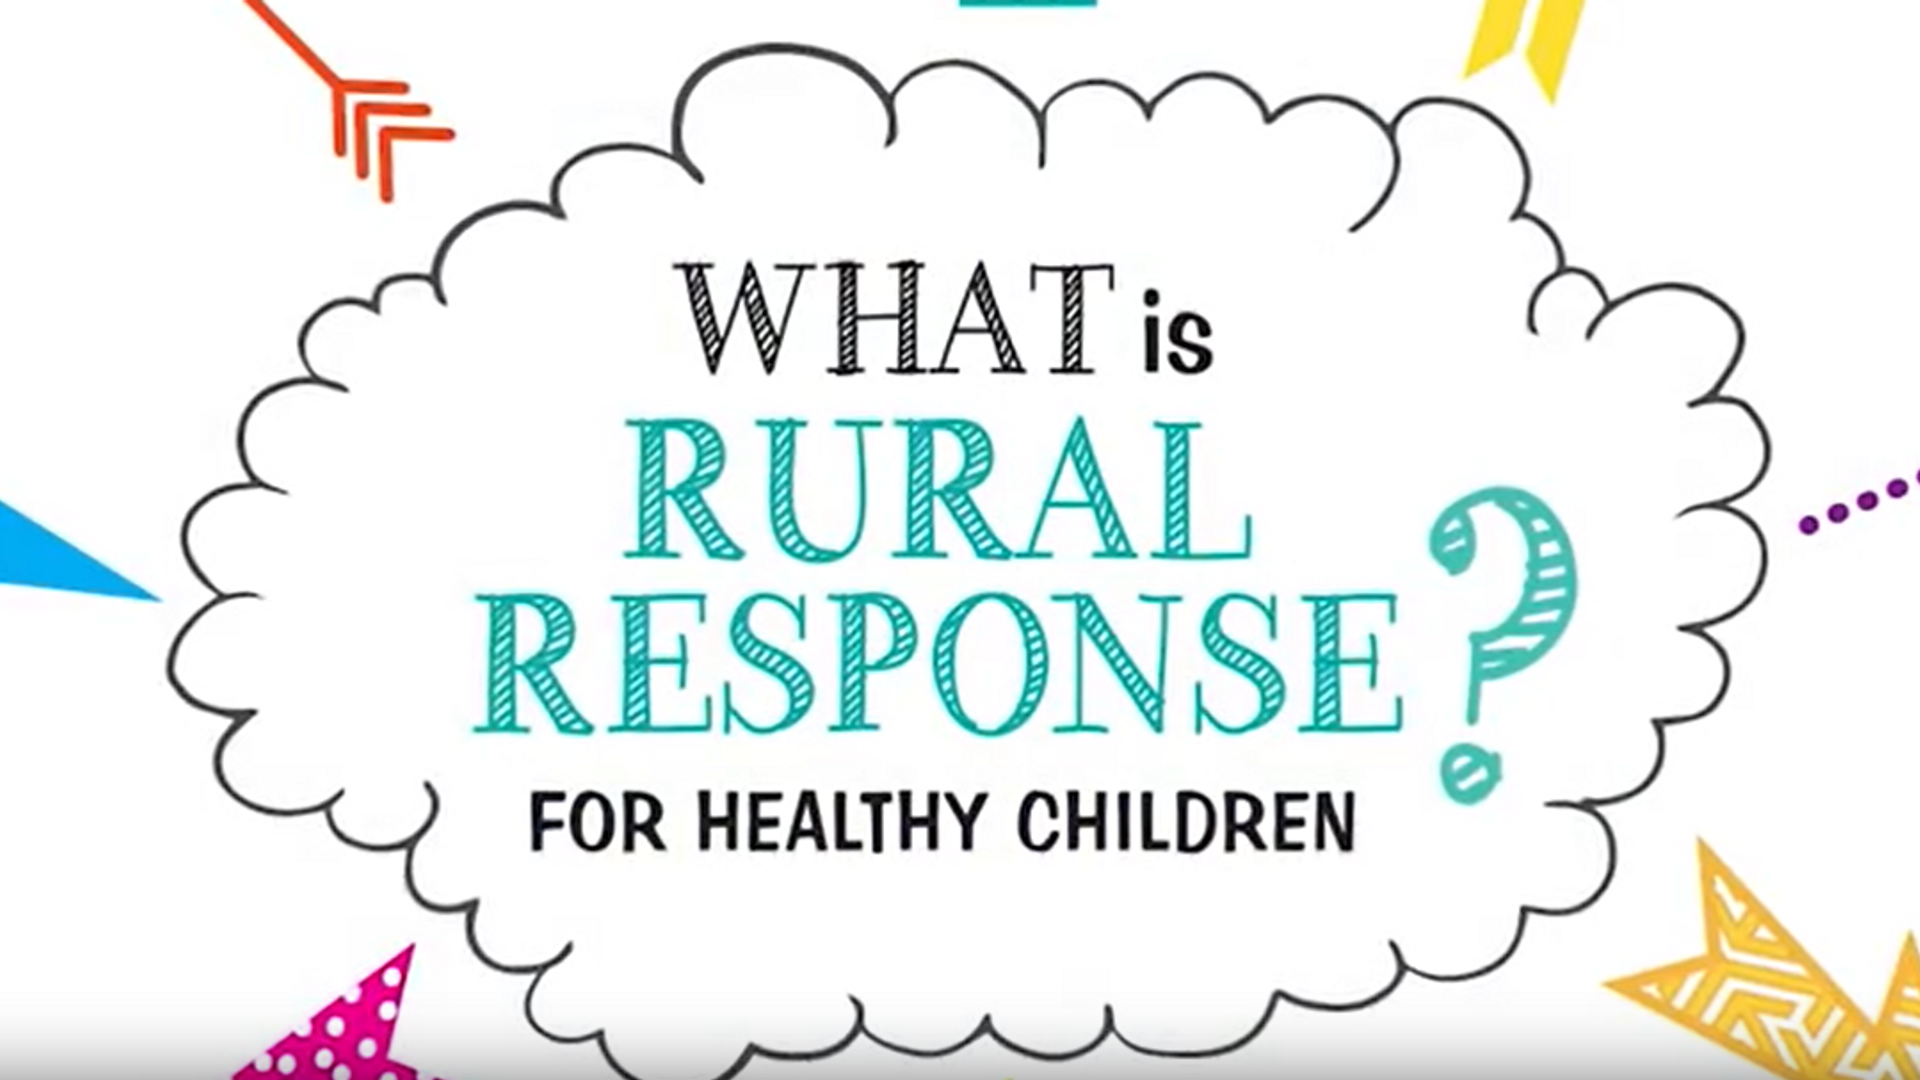 What is Rural Response for Healthy Children?